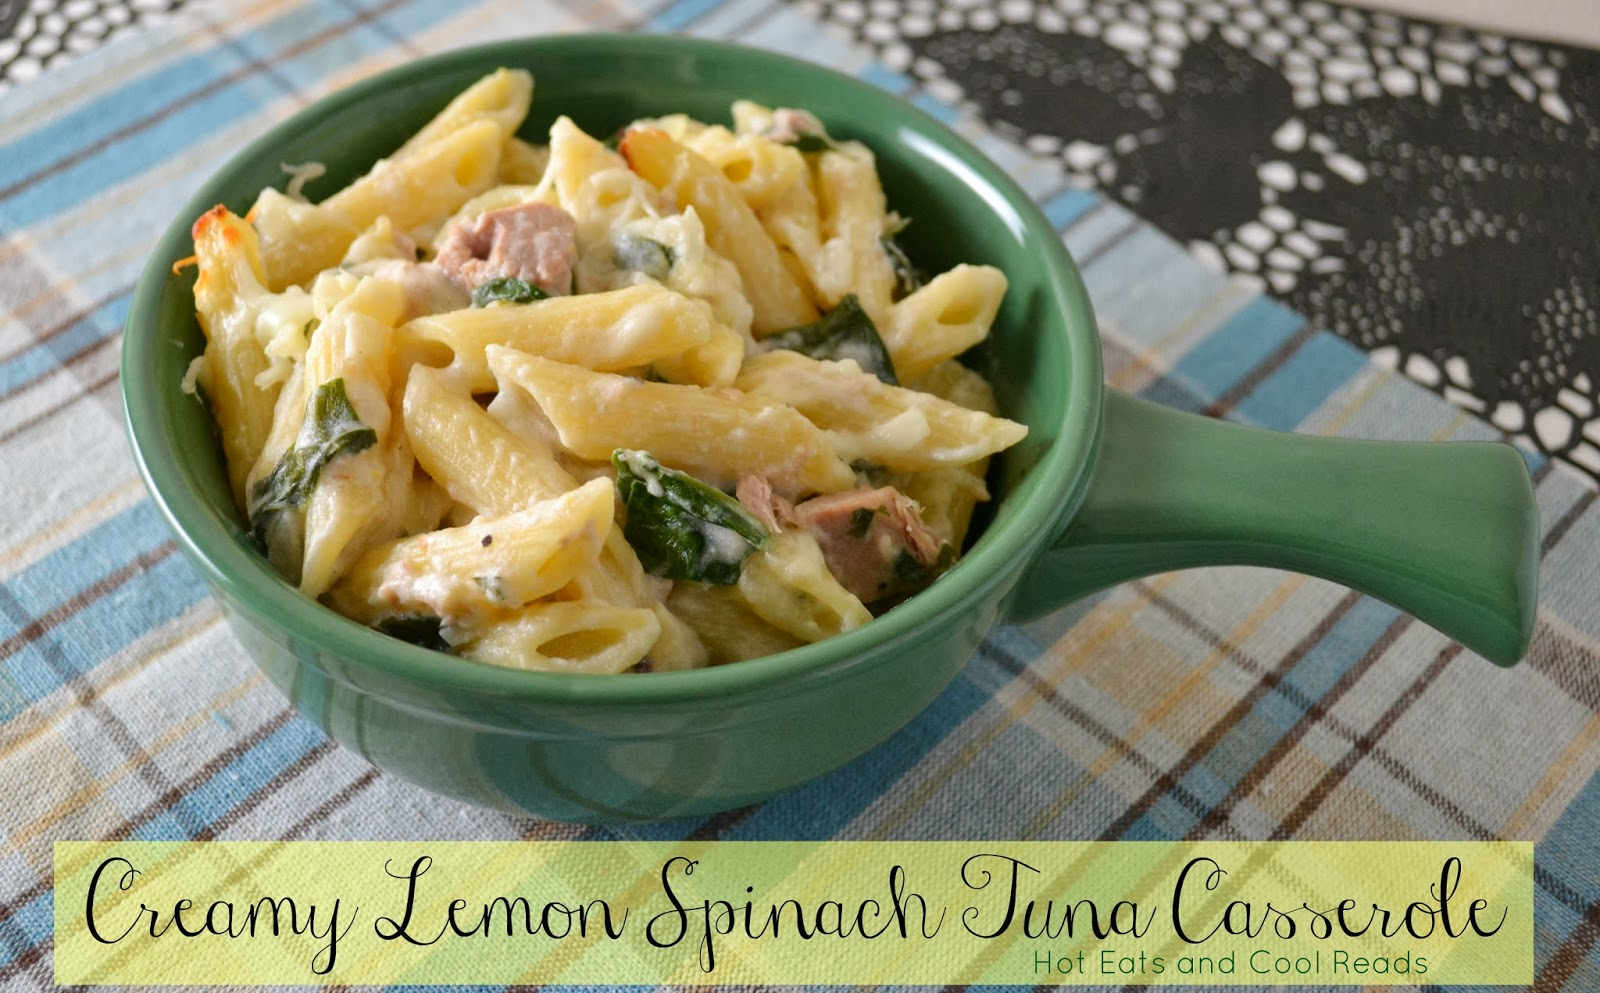 Creamy Lemon Spinach Tuna Casserole - Spinach Recipes: 10 Tasty Recipes Including Spinach